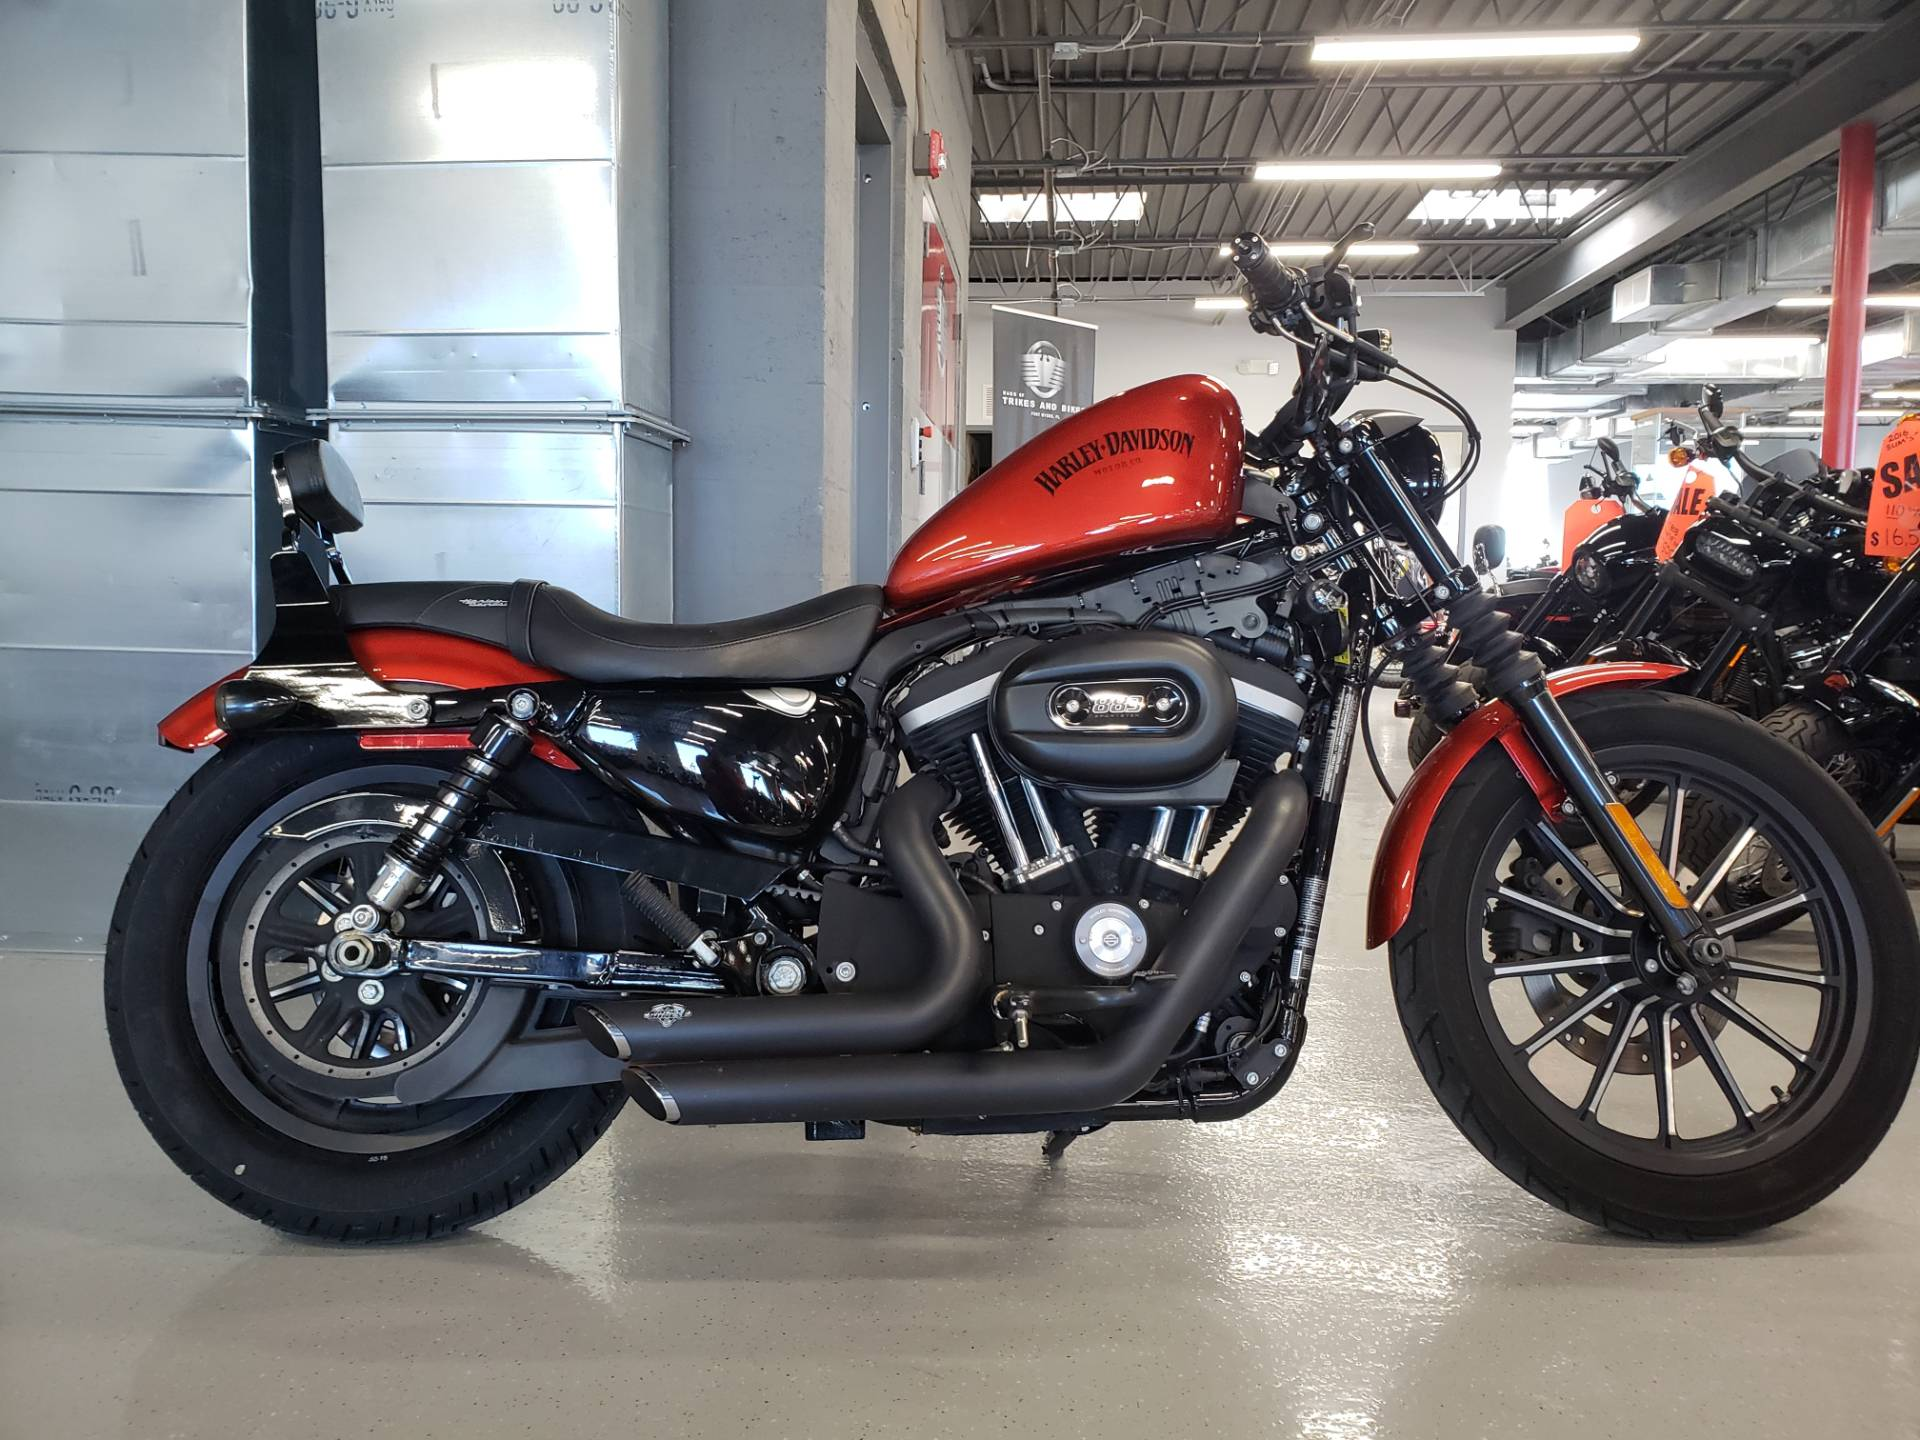 Used 2013 Harley Davidson Sportster Iron 883 Motorcycles In Fort